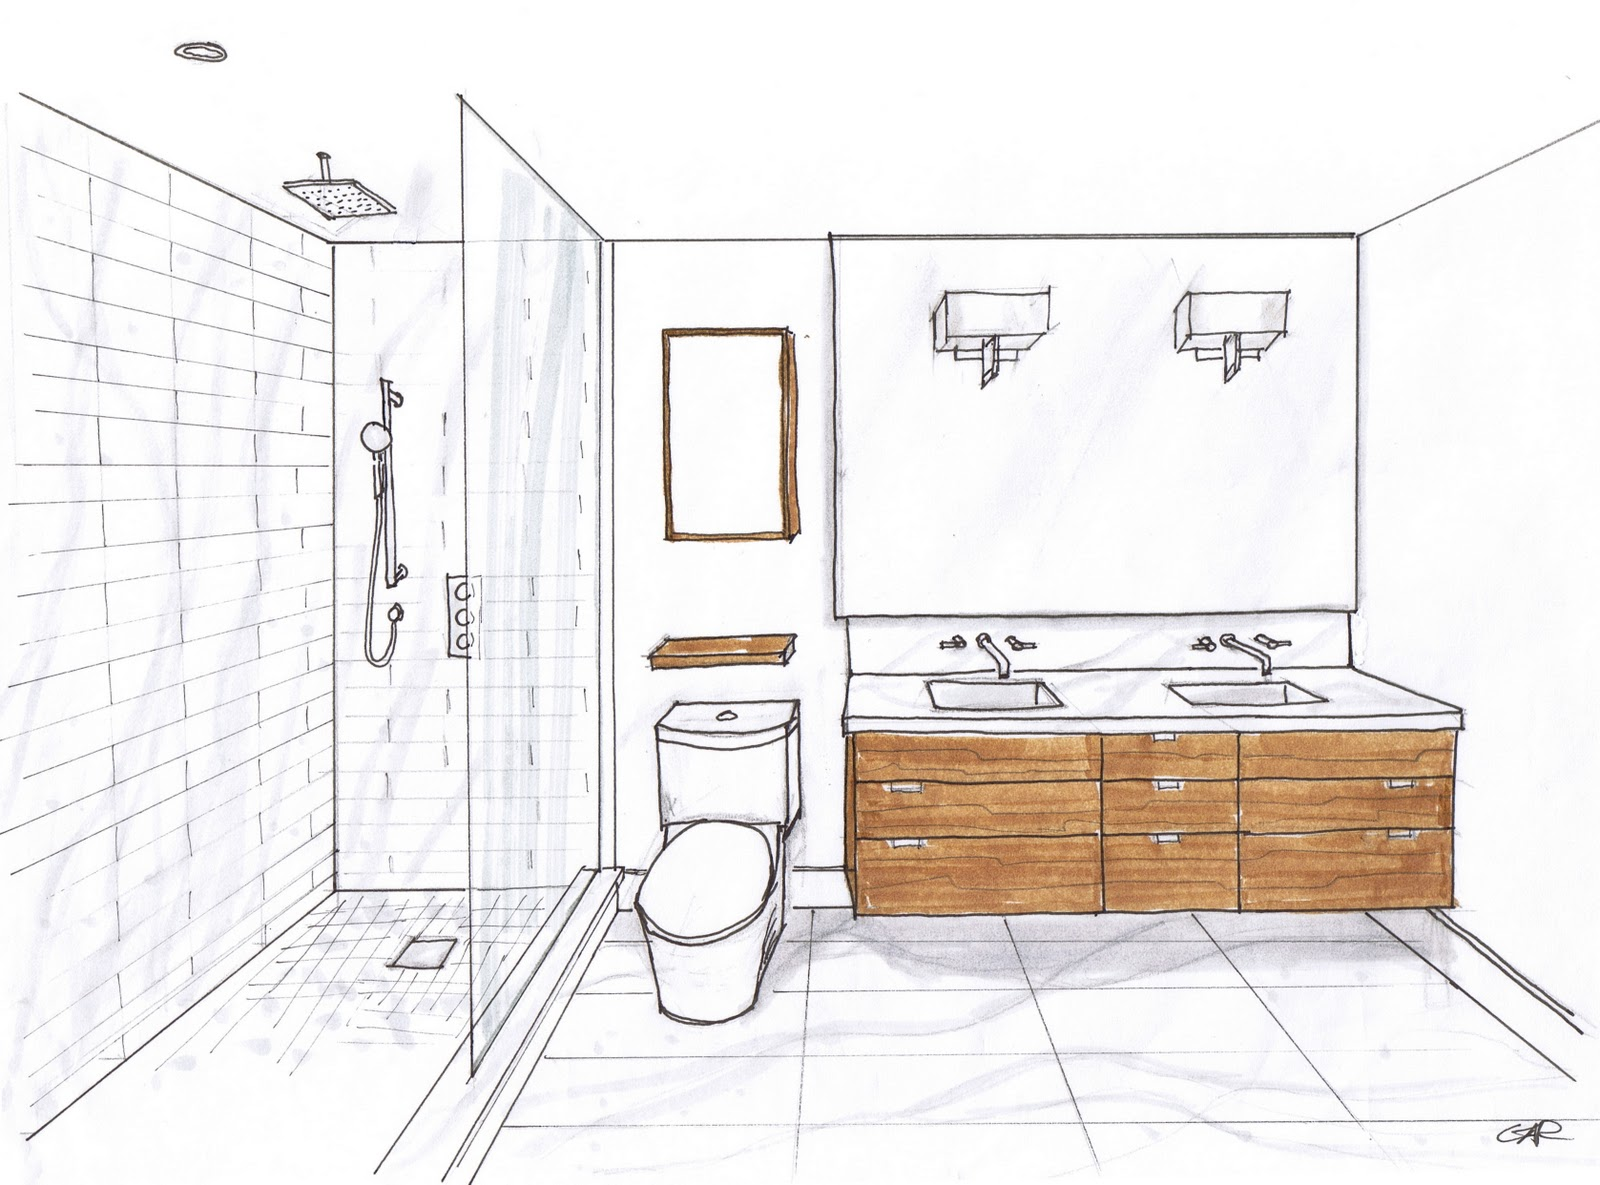 Creed 70 39 s bungalow bathroom designs for Bathroom design 12 x 8